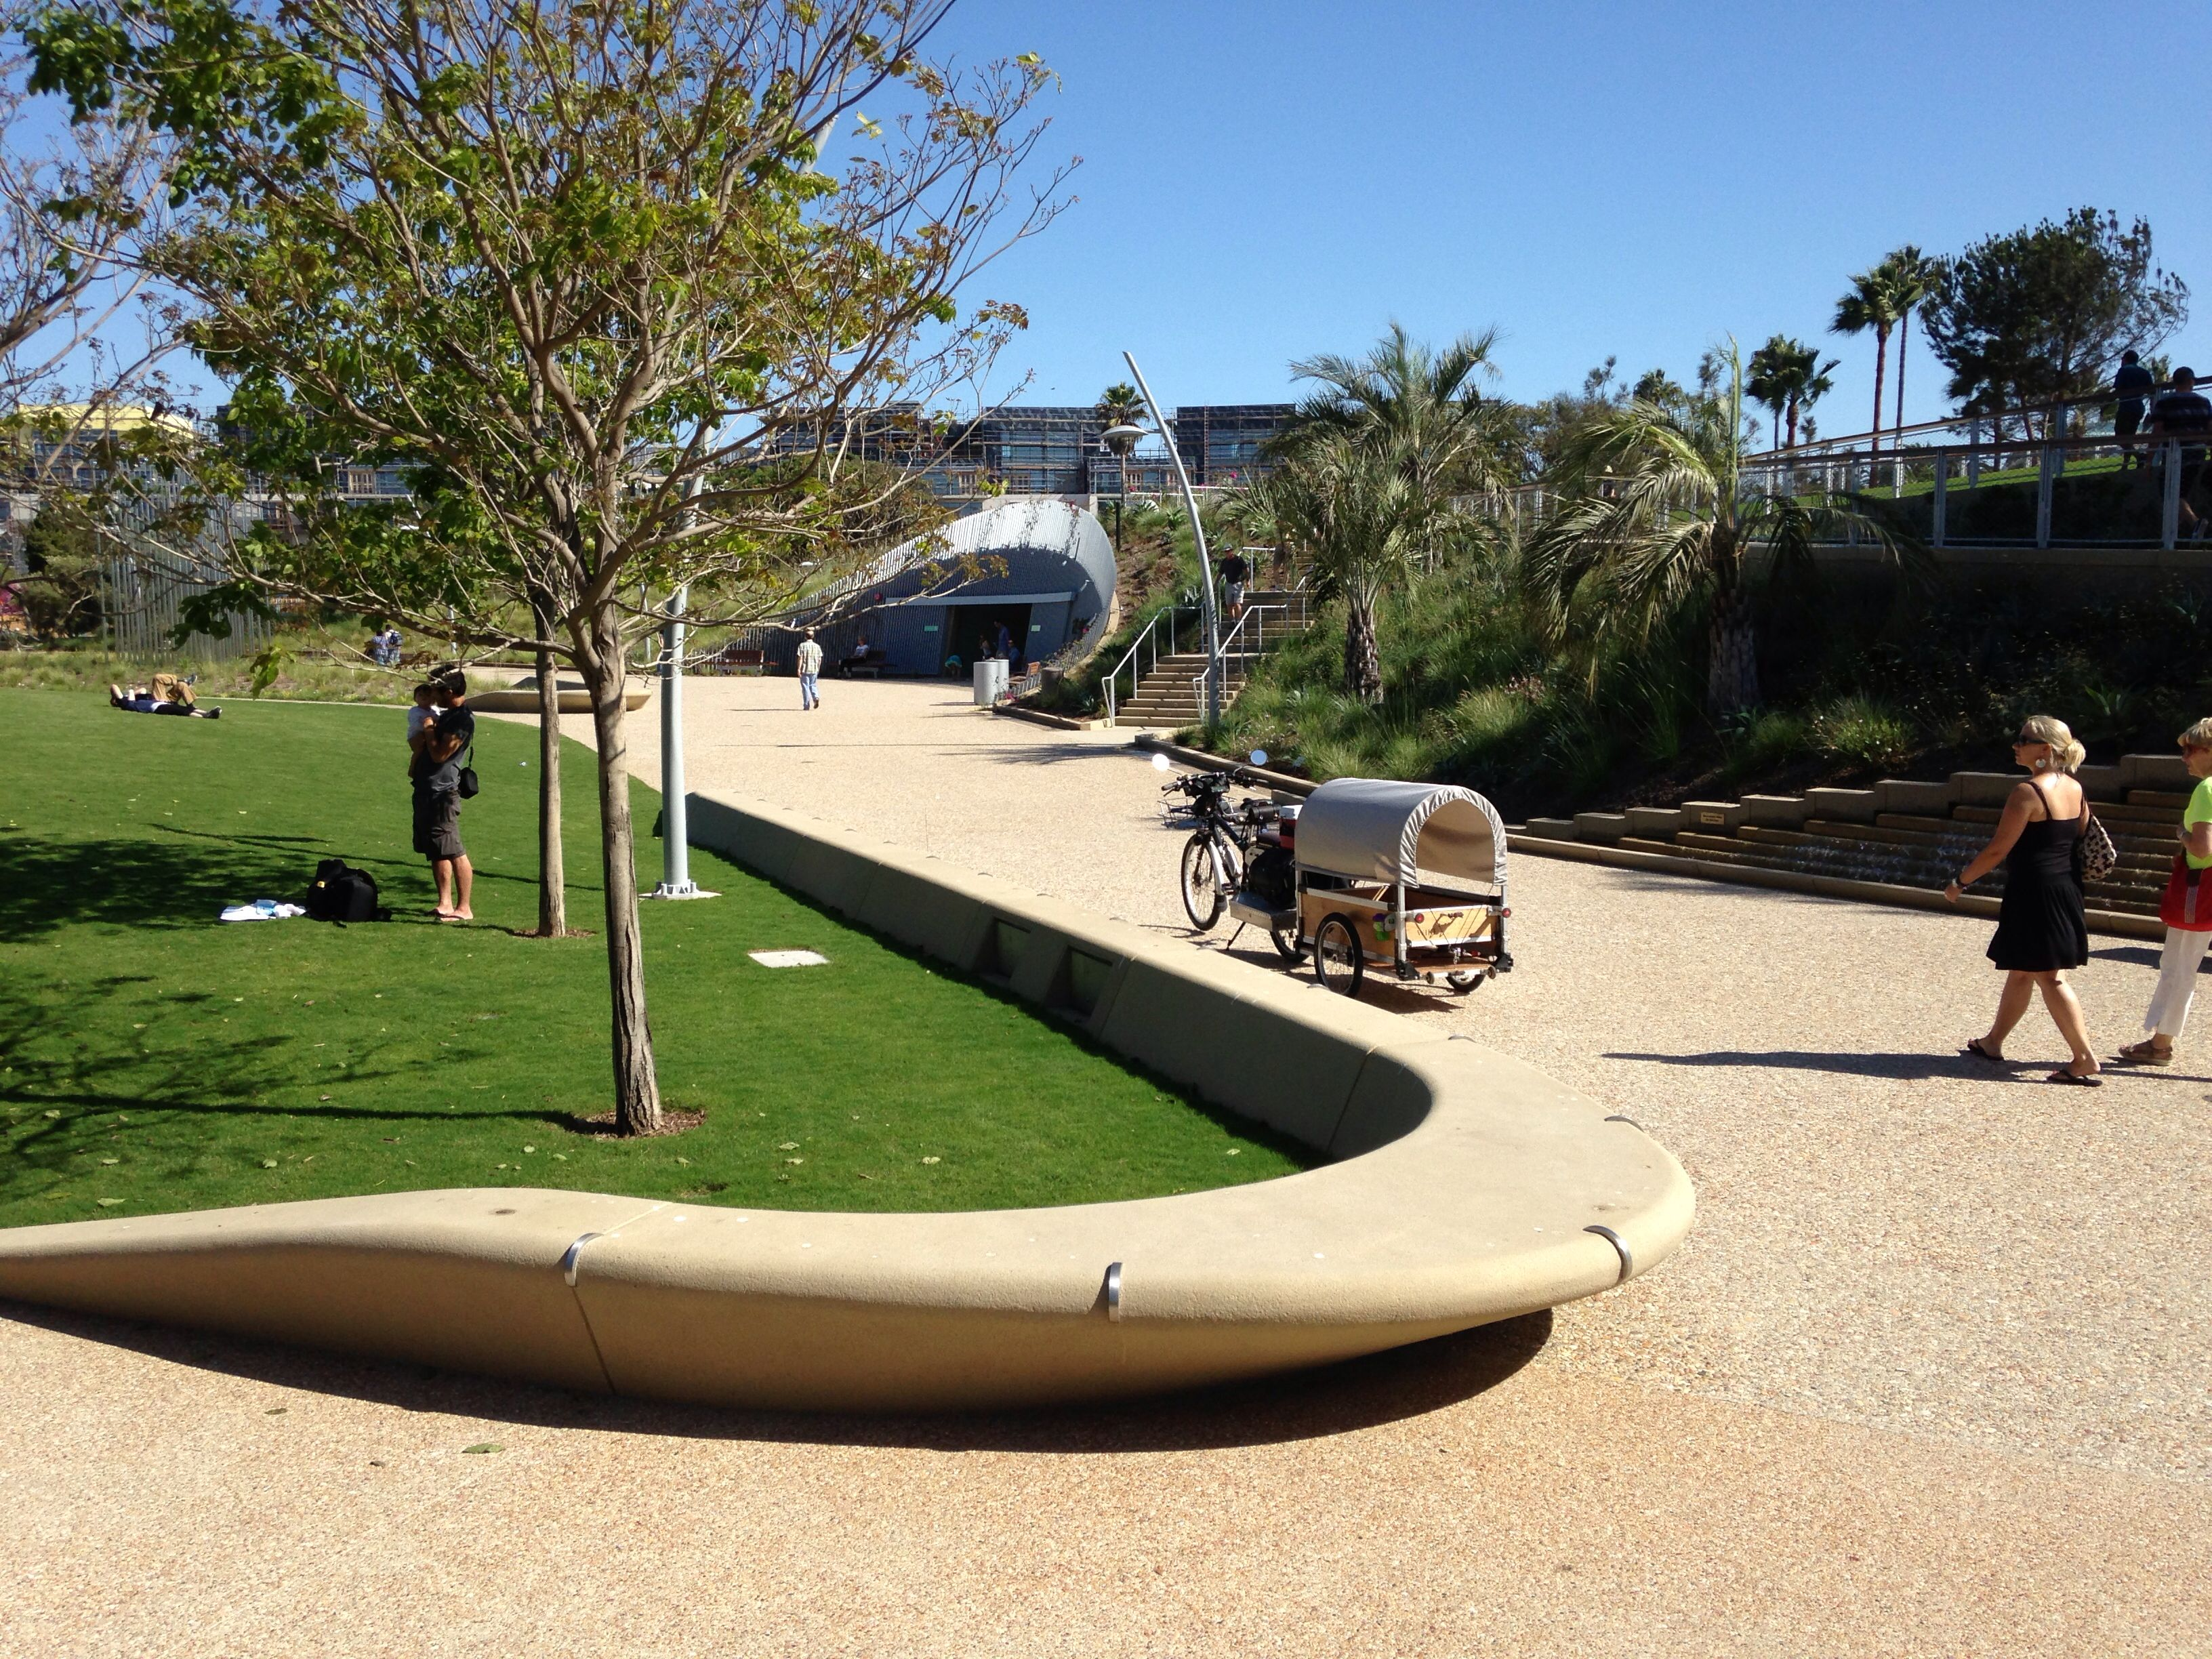 tongva park curbs as benches parks pinterest. Black Bedroom Furniture Sets. Home Design Ideas